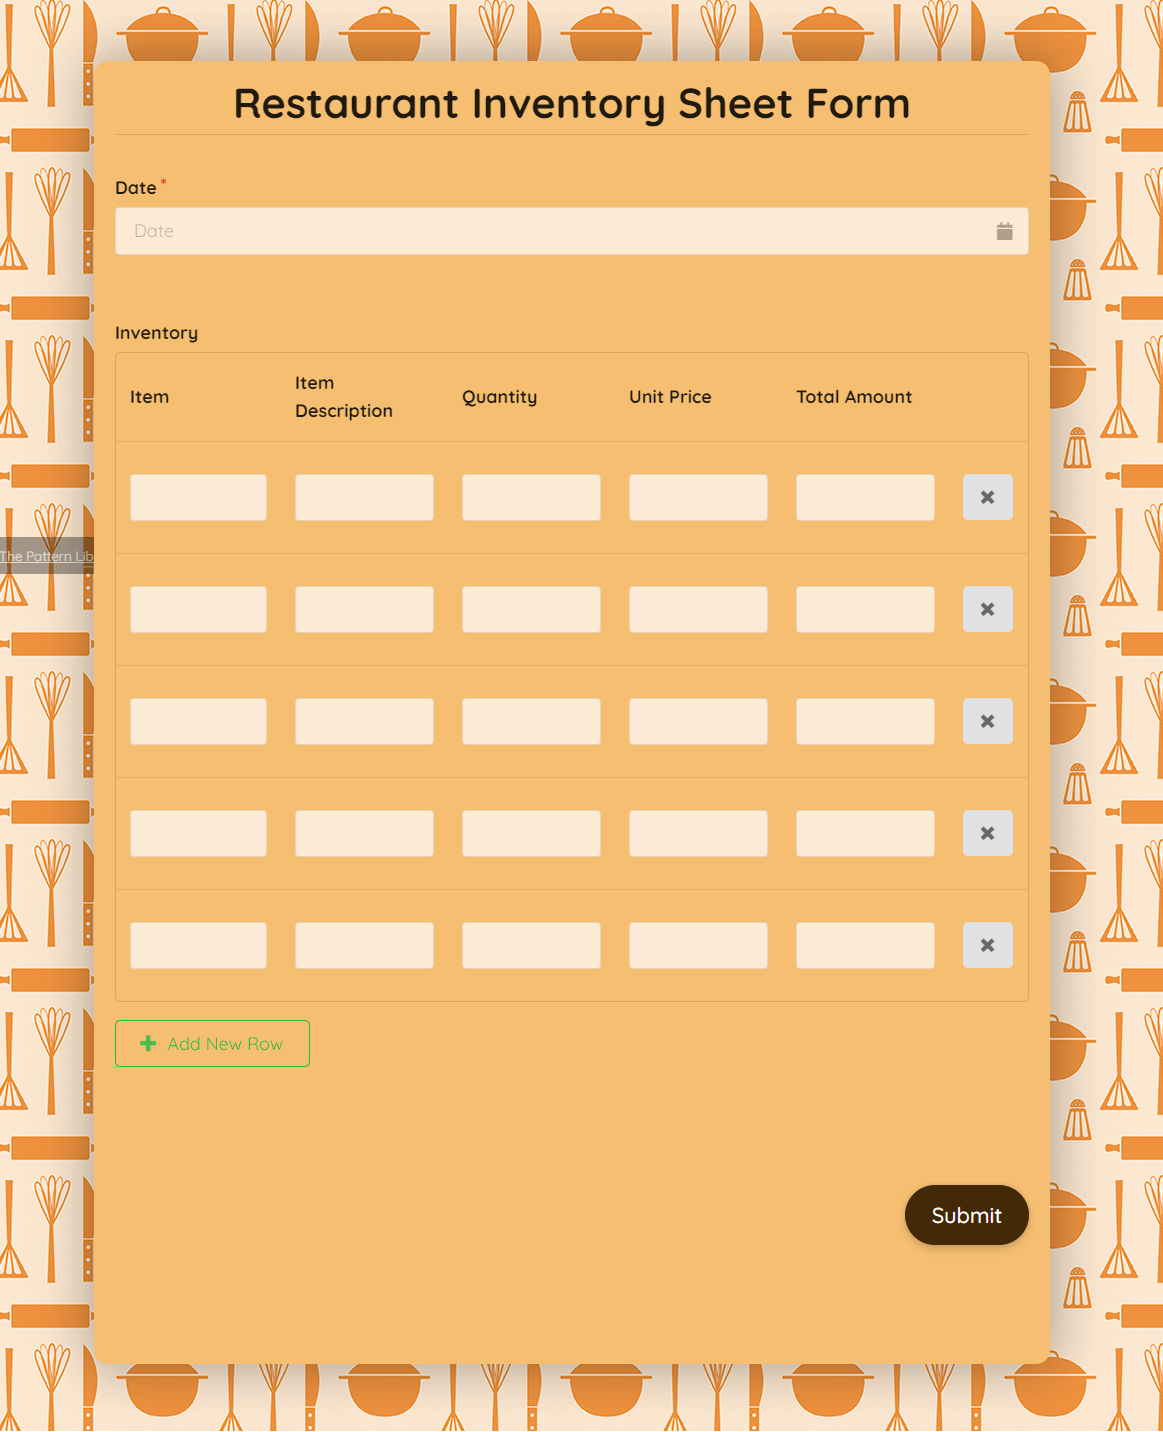 Then, create a copy of the food and beverage inventory template for each month's use. Restuarant Inventory Sheet Form Formplus